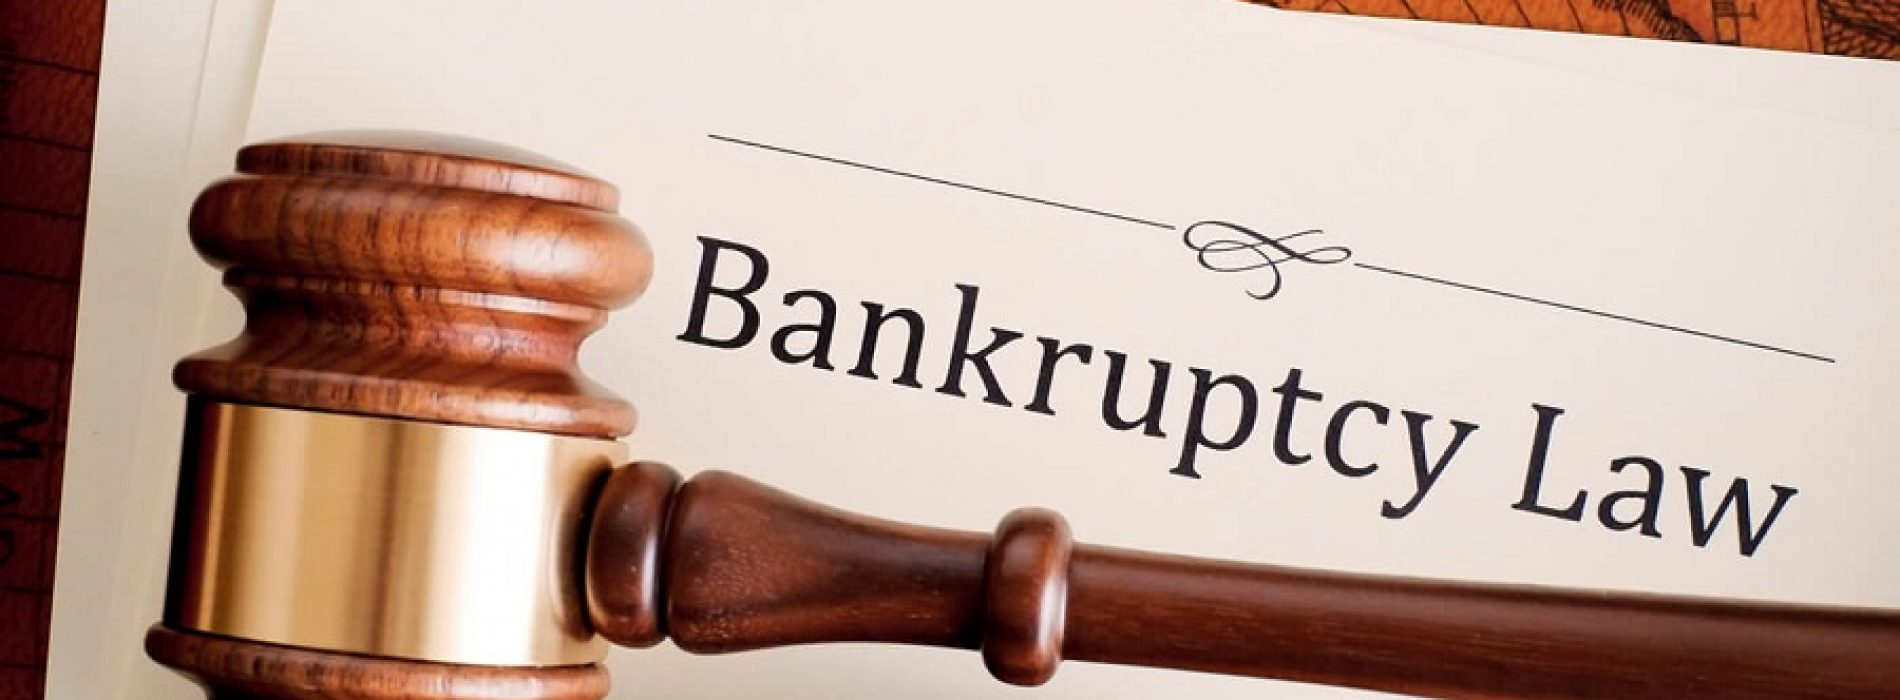 Contrasts Between Chapter 7 and Chapter 13 Bankruptcy